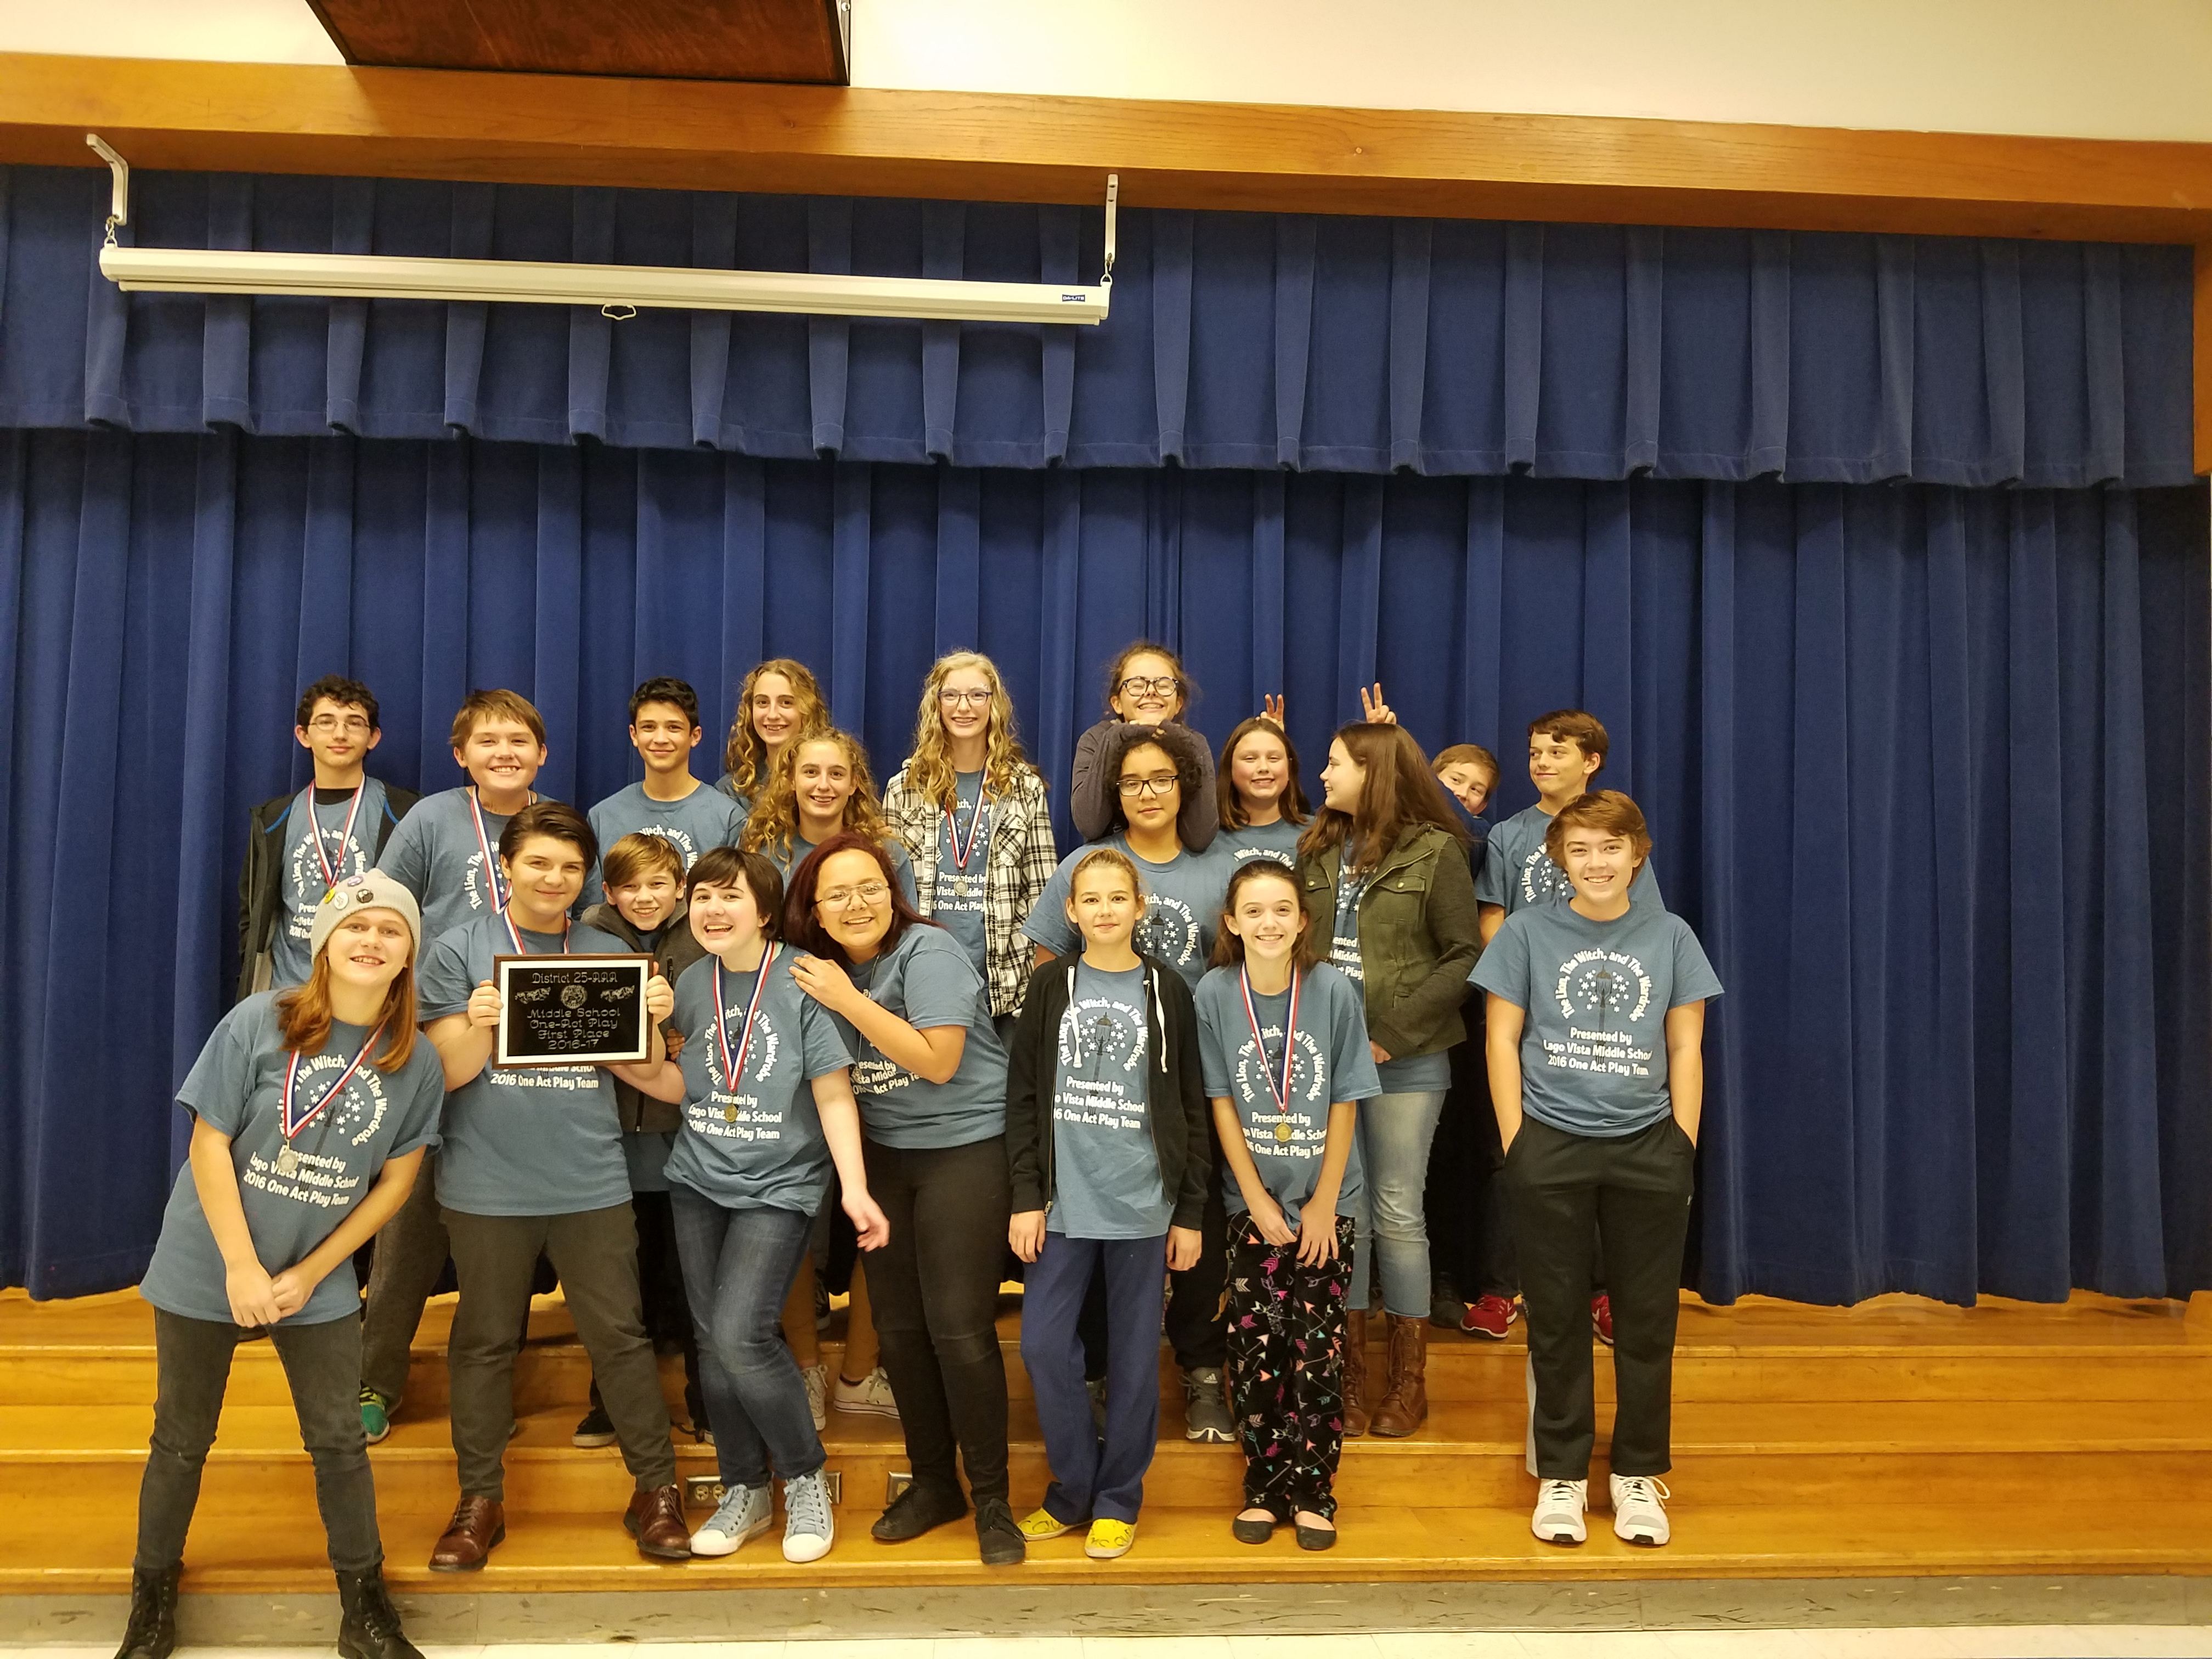 custom t-shirts for lvms one act play district champs - shirt design